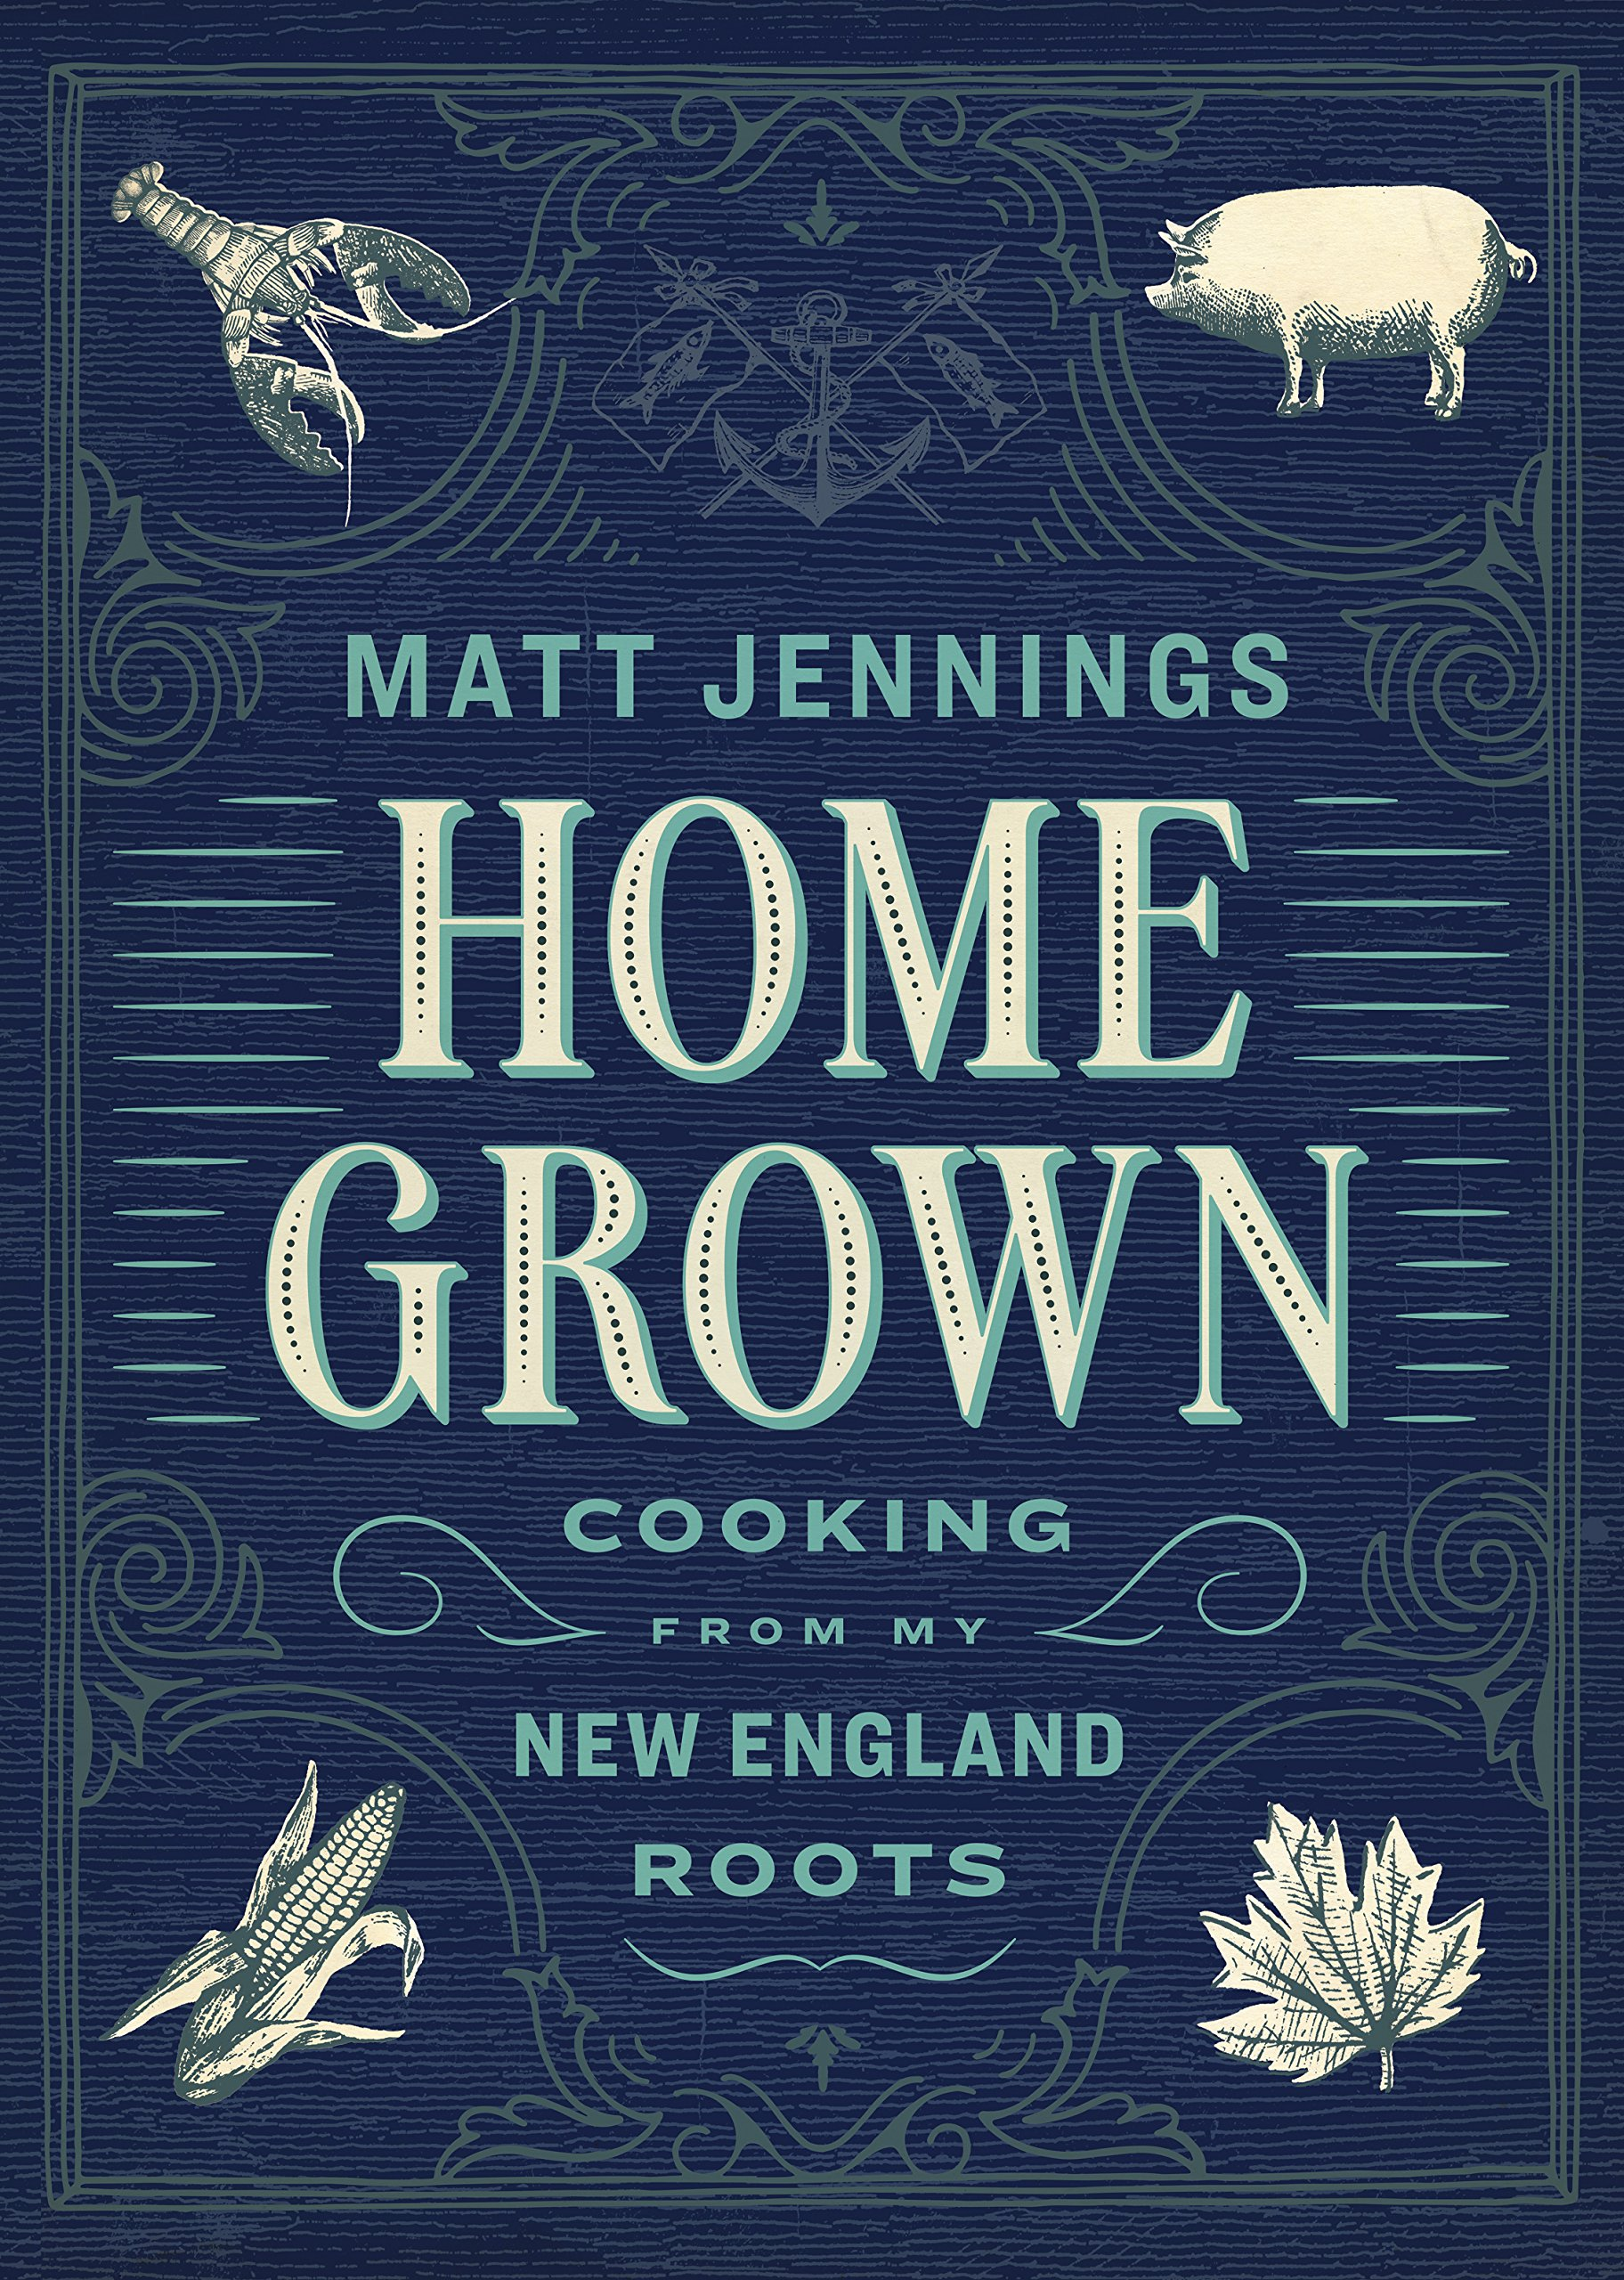 """Homegrown"" 2018 - Matt Jennings, the author, created a chronicle of his restaurants recipes called Homegrown. I extensively tested and retested recipes for this award winning cookbook published in 2018."